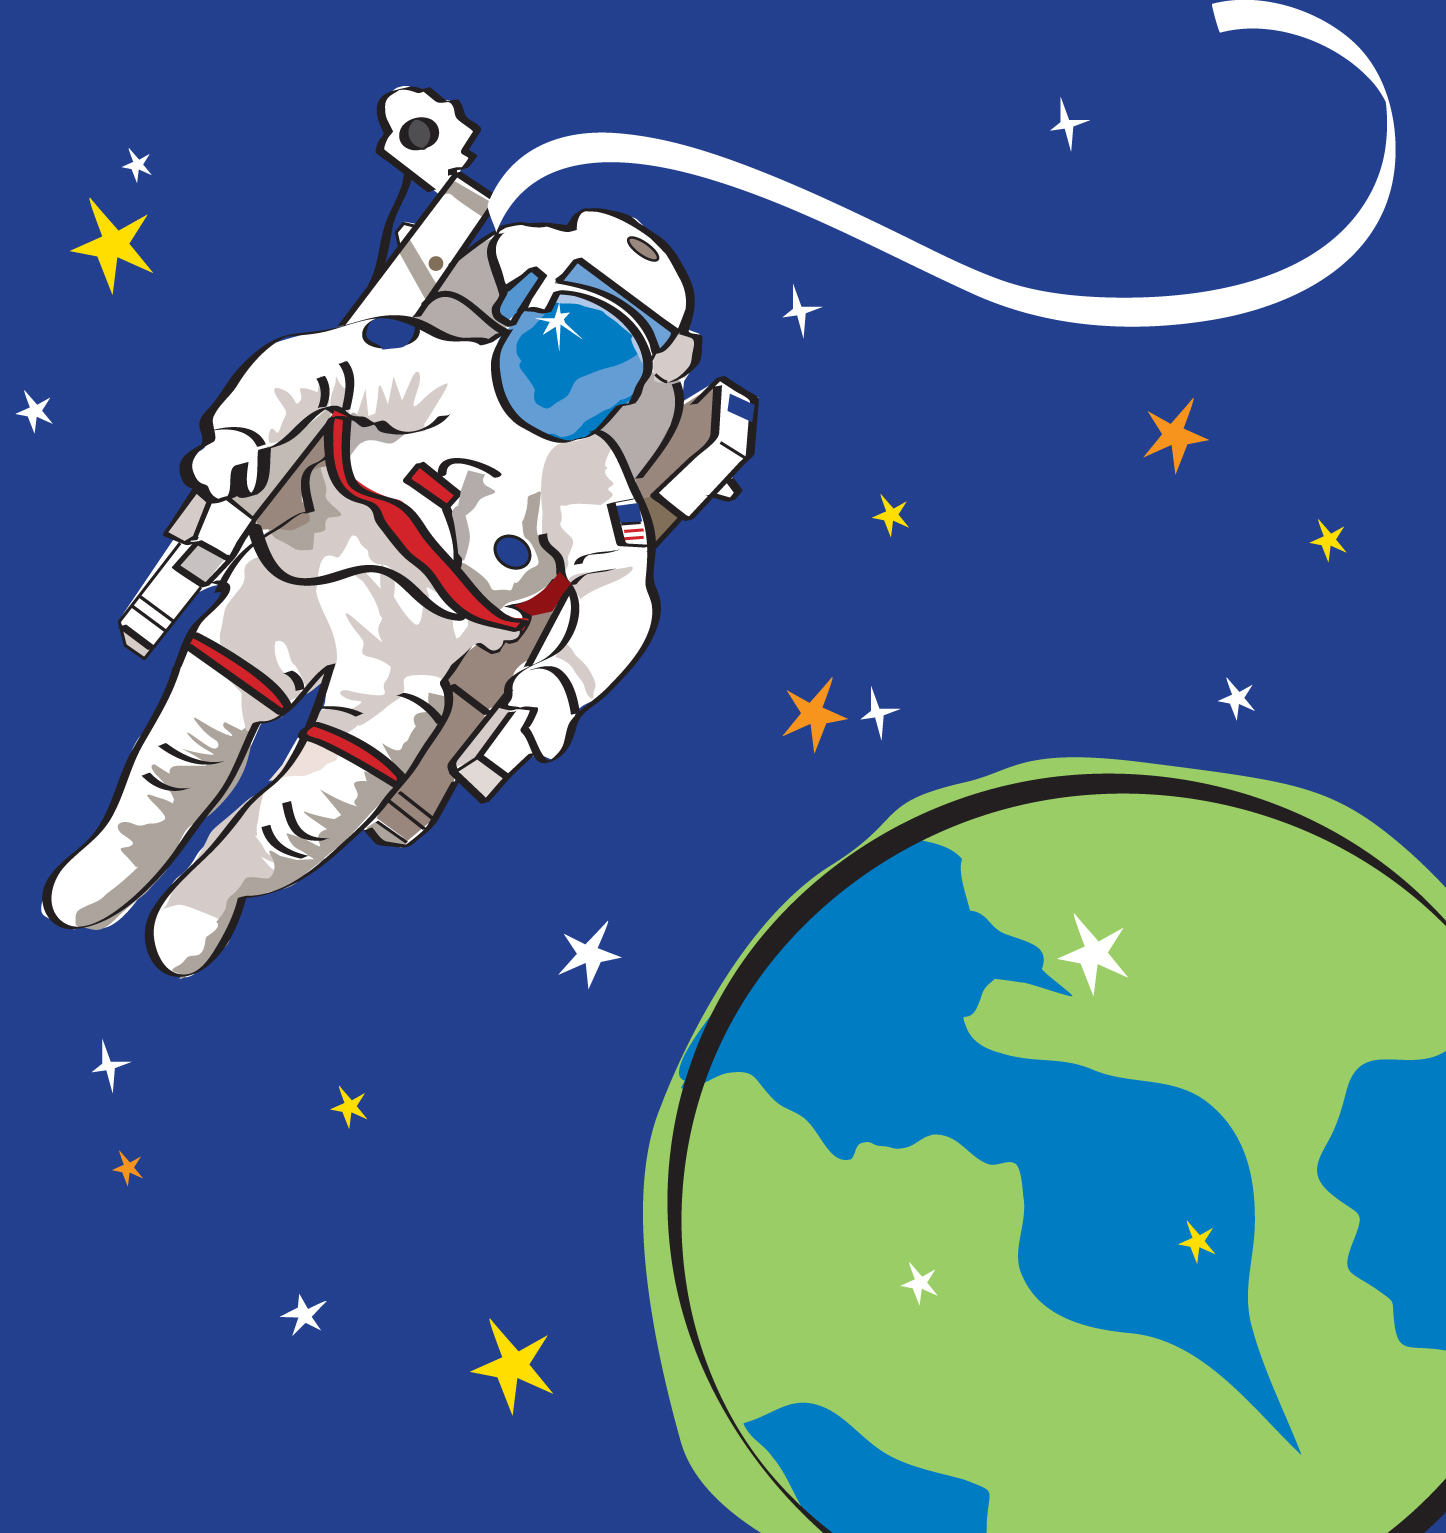 Astronaut Illustration - Pics about space